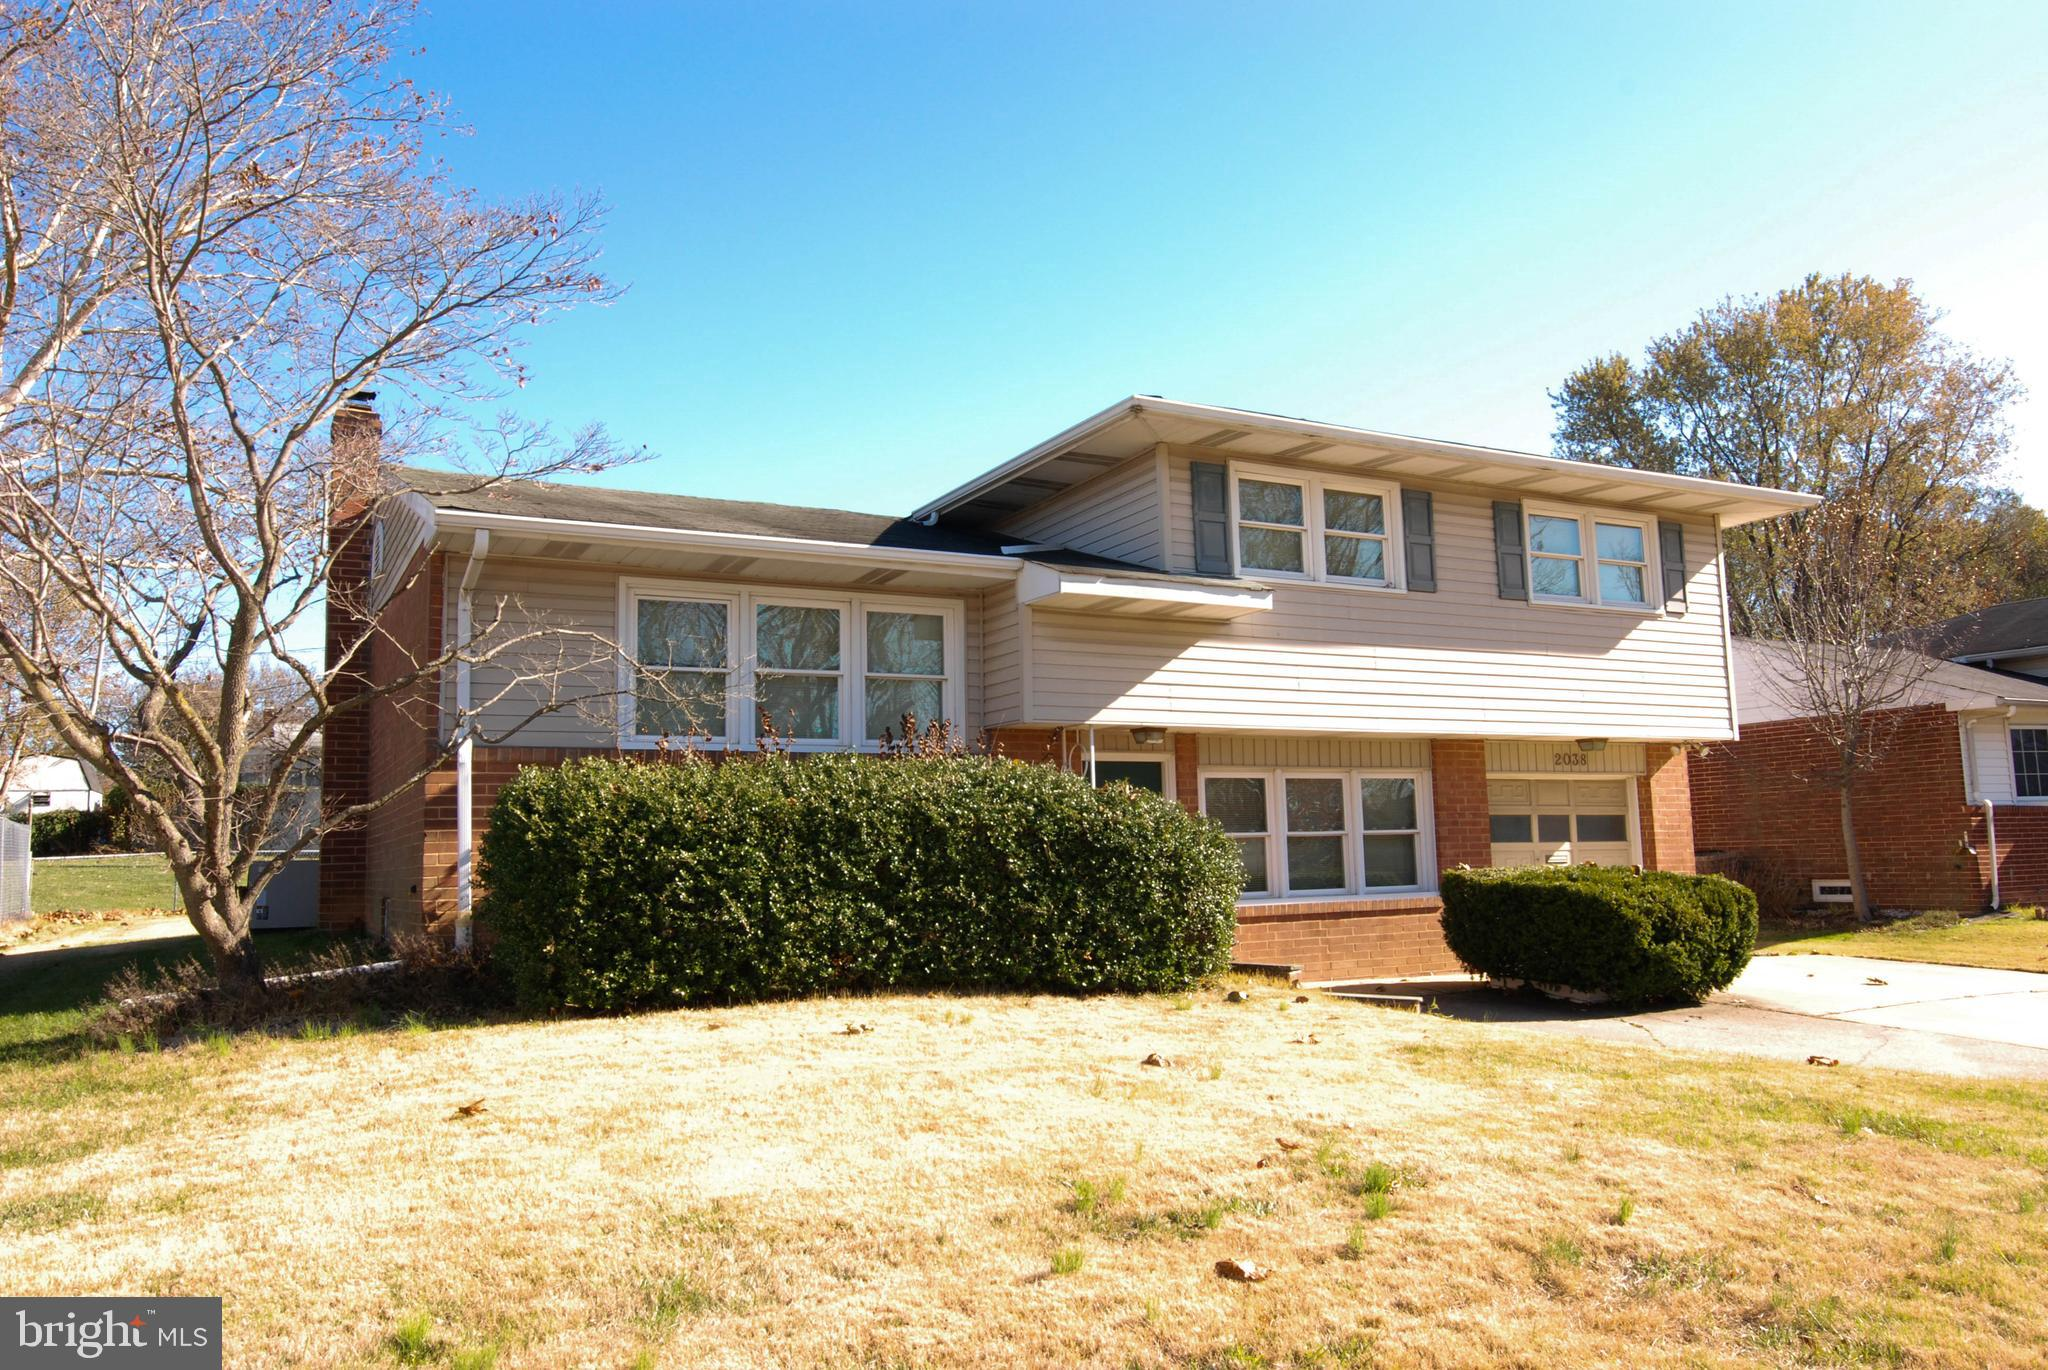 The conveneinetly located house has so much potential to be your new home!  There is plenty of space